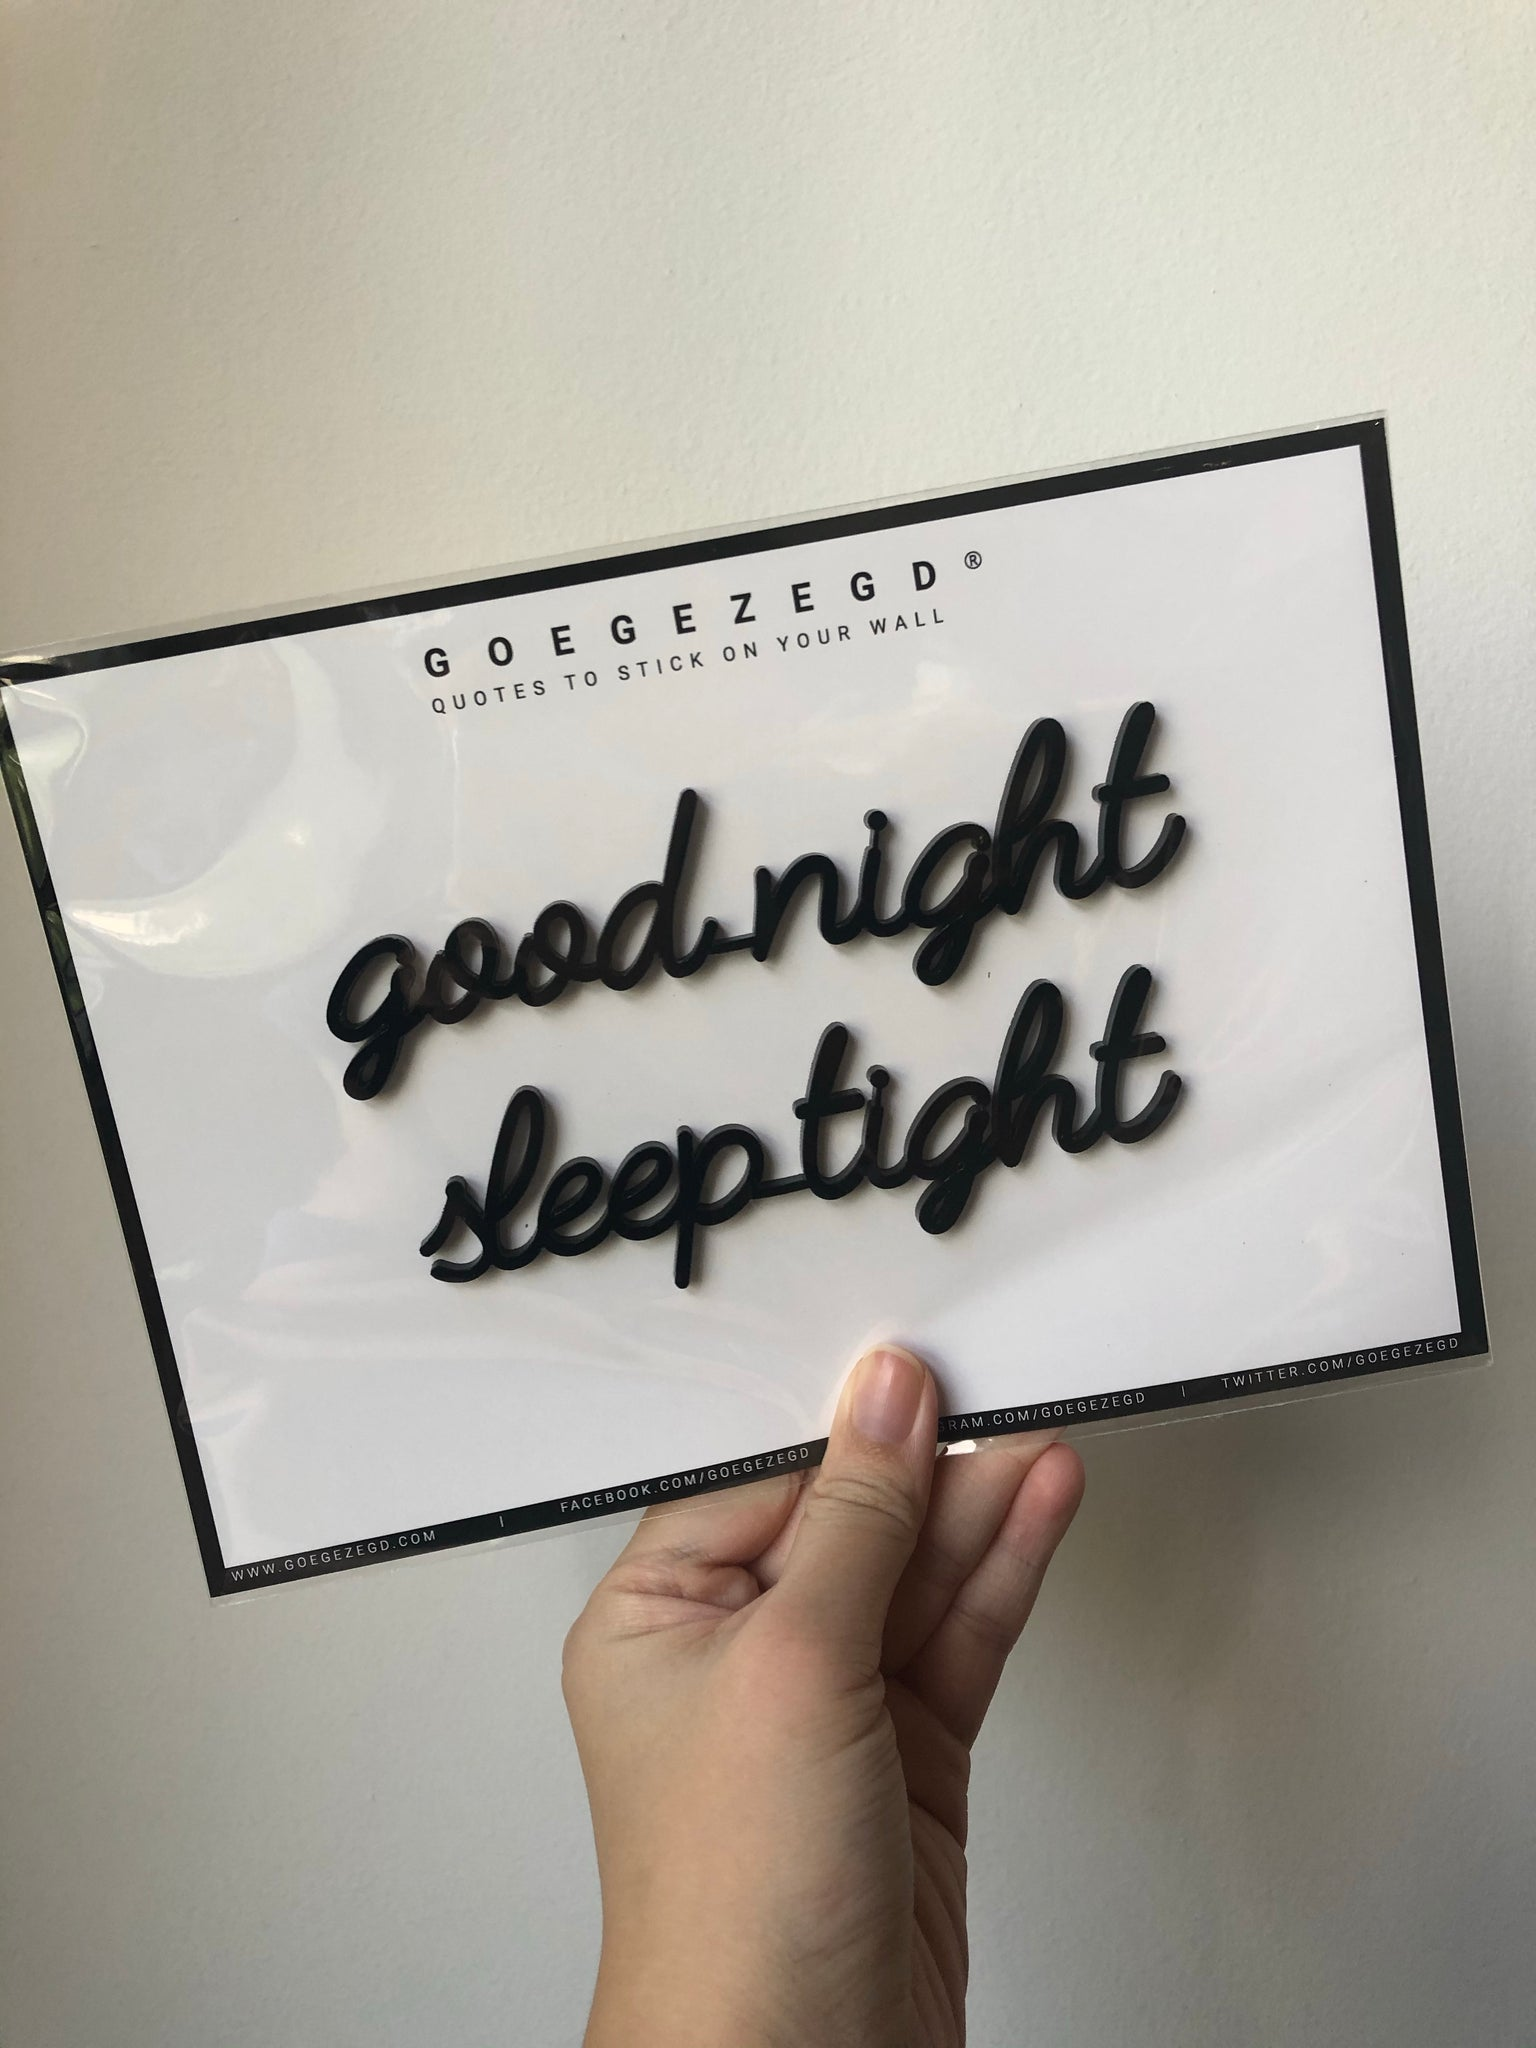 Self-Adhesive Quote - good night sleep tight